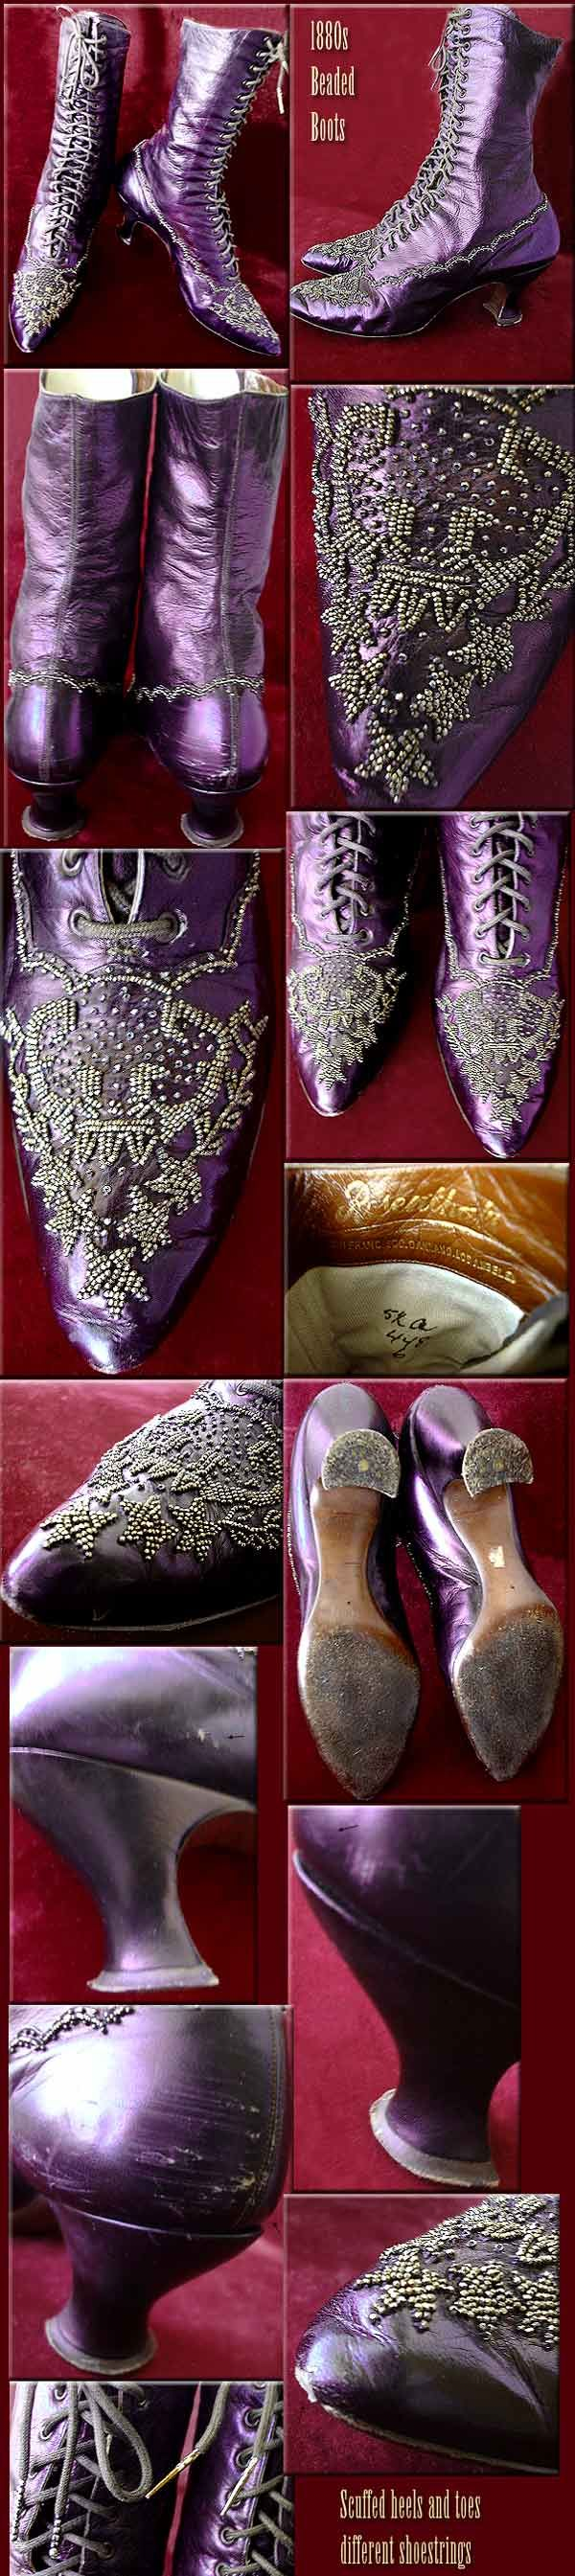 1880's Beaded Steel Plum Iridescent. I love purple & boots! I would've SO worn these beautiful boots.